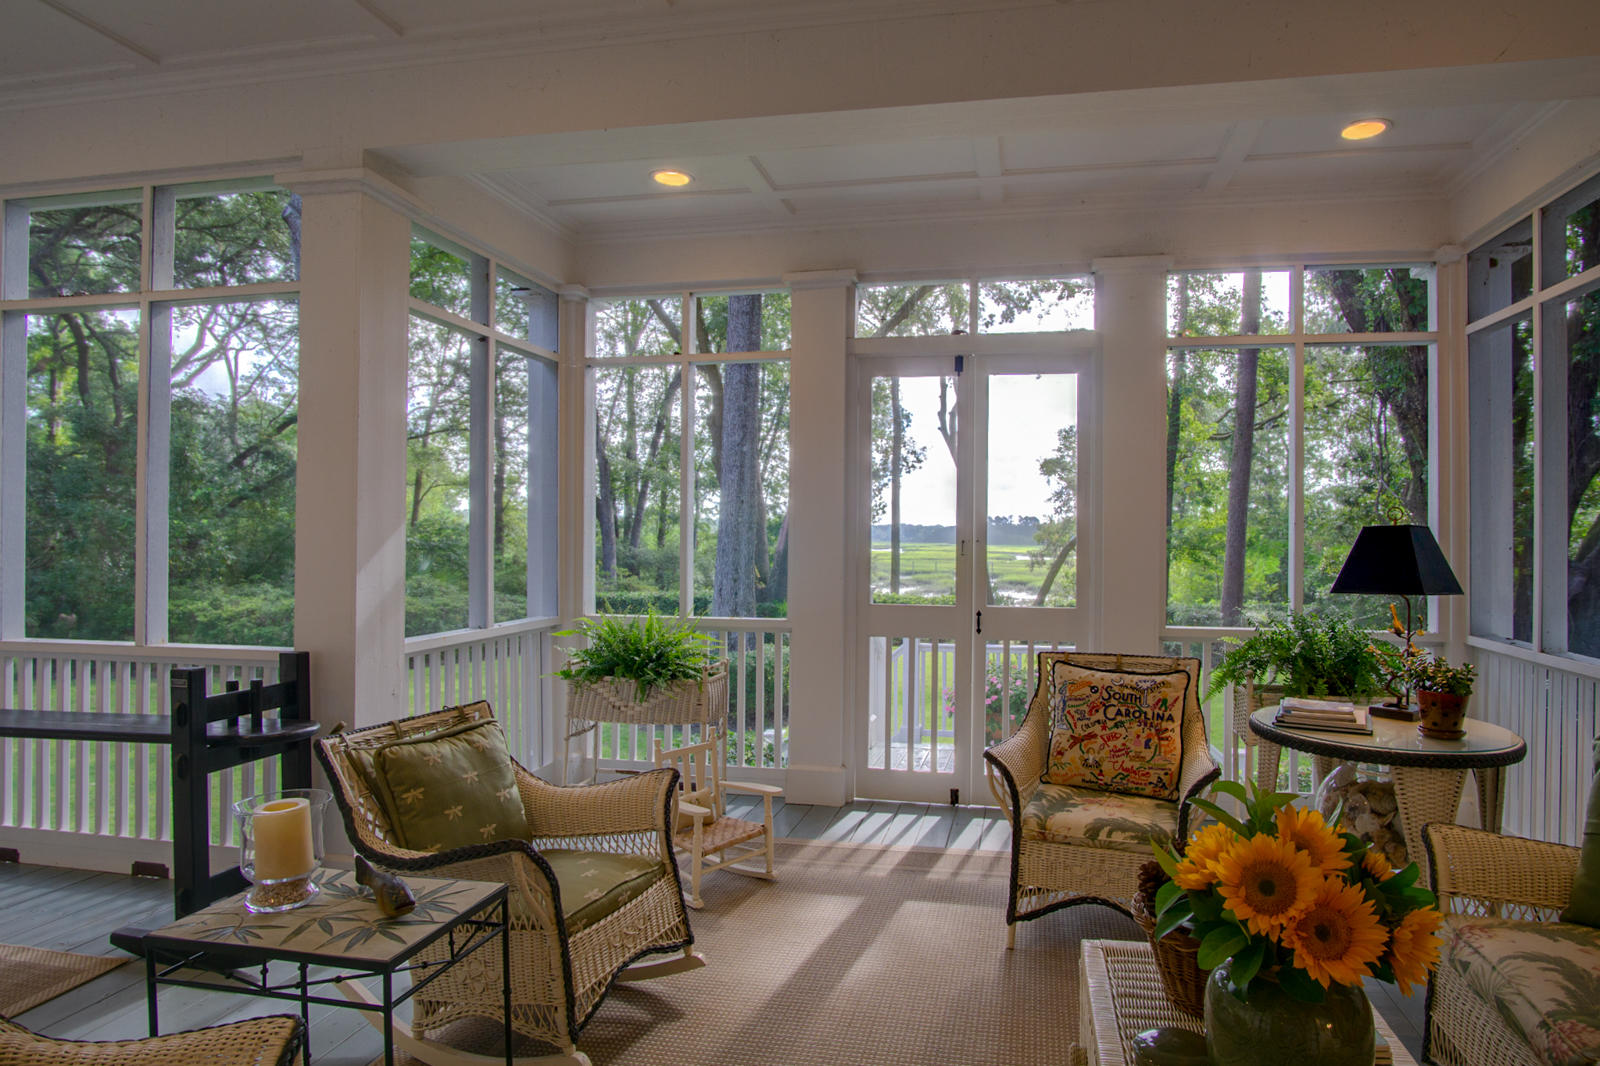 Bull Point Plantation Homes For Sale - 123 Bull Point, Seabrook, SC - 26